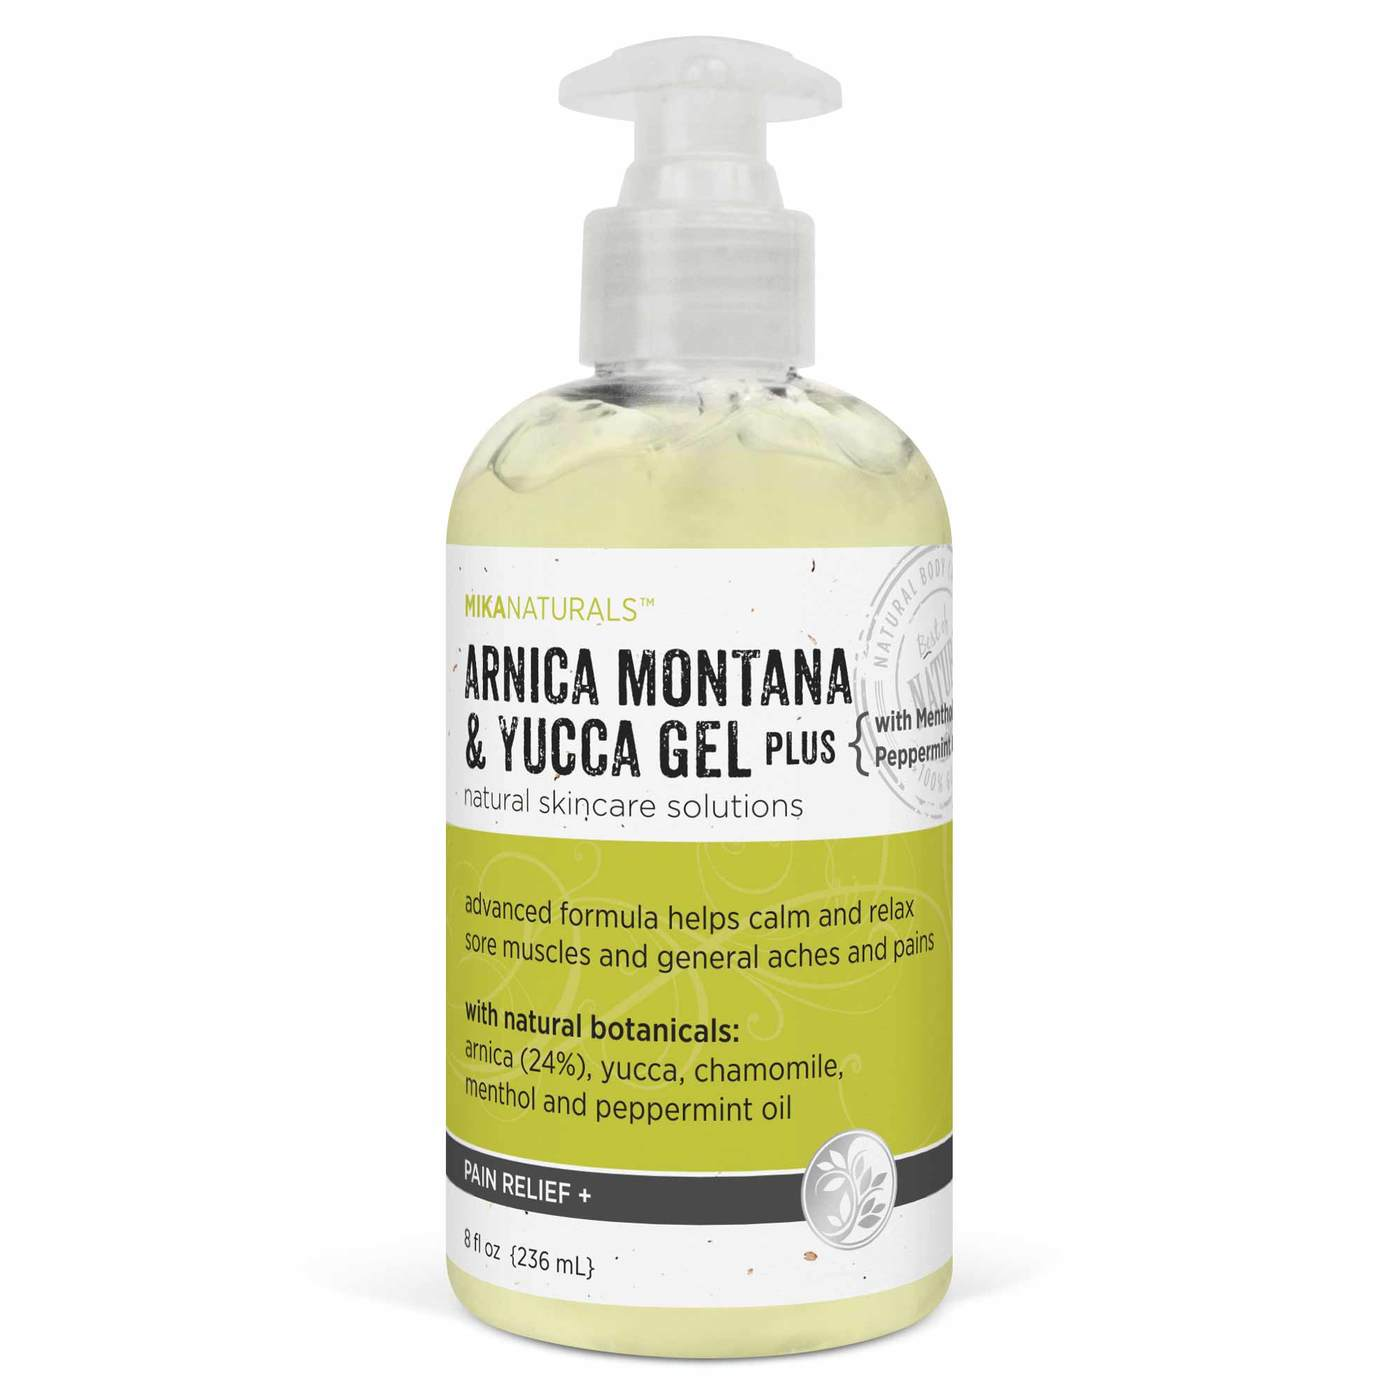 Mika Naturals Pain Relief Arnica Montana and Yucca Gel (with Menthol) – 8 fl oz (236 mL)